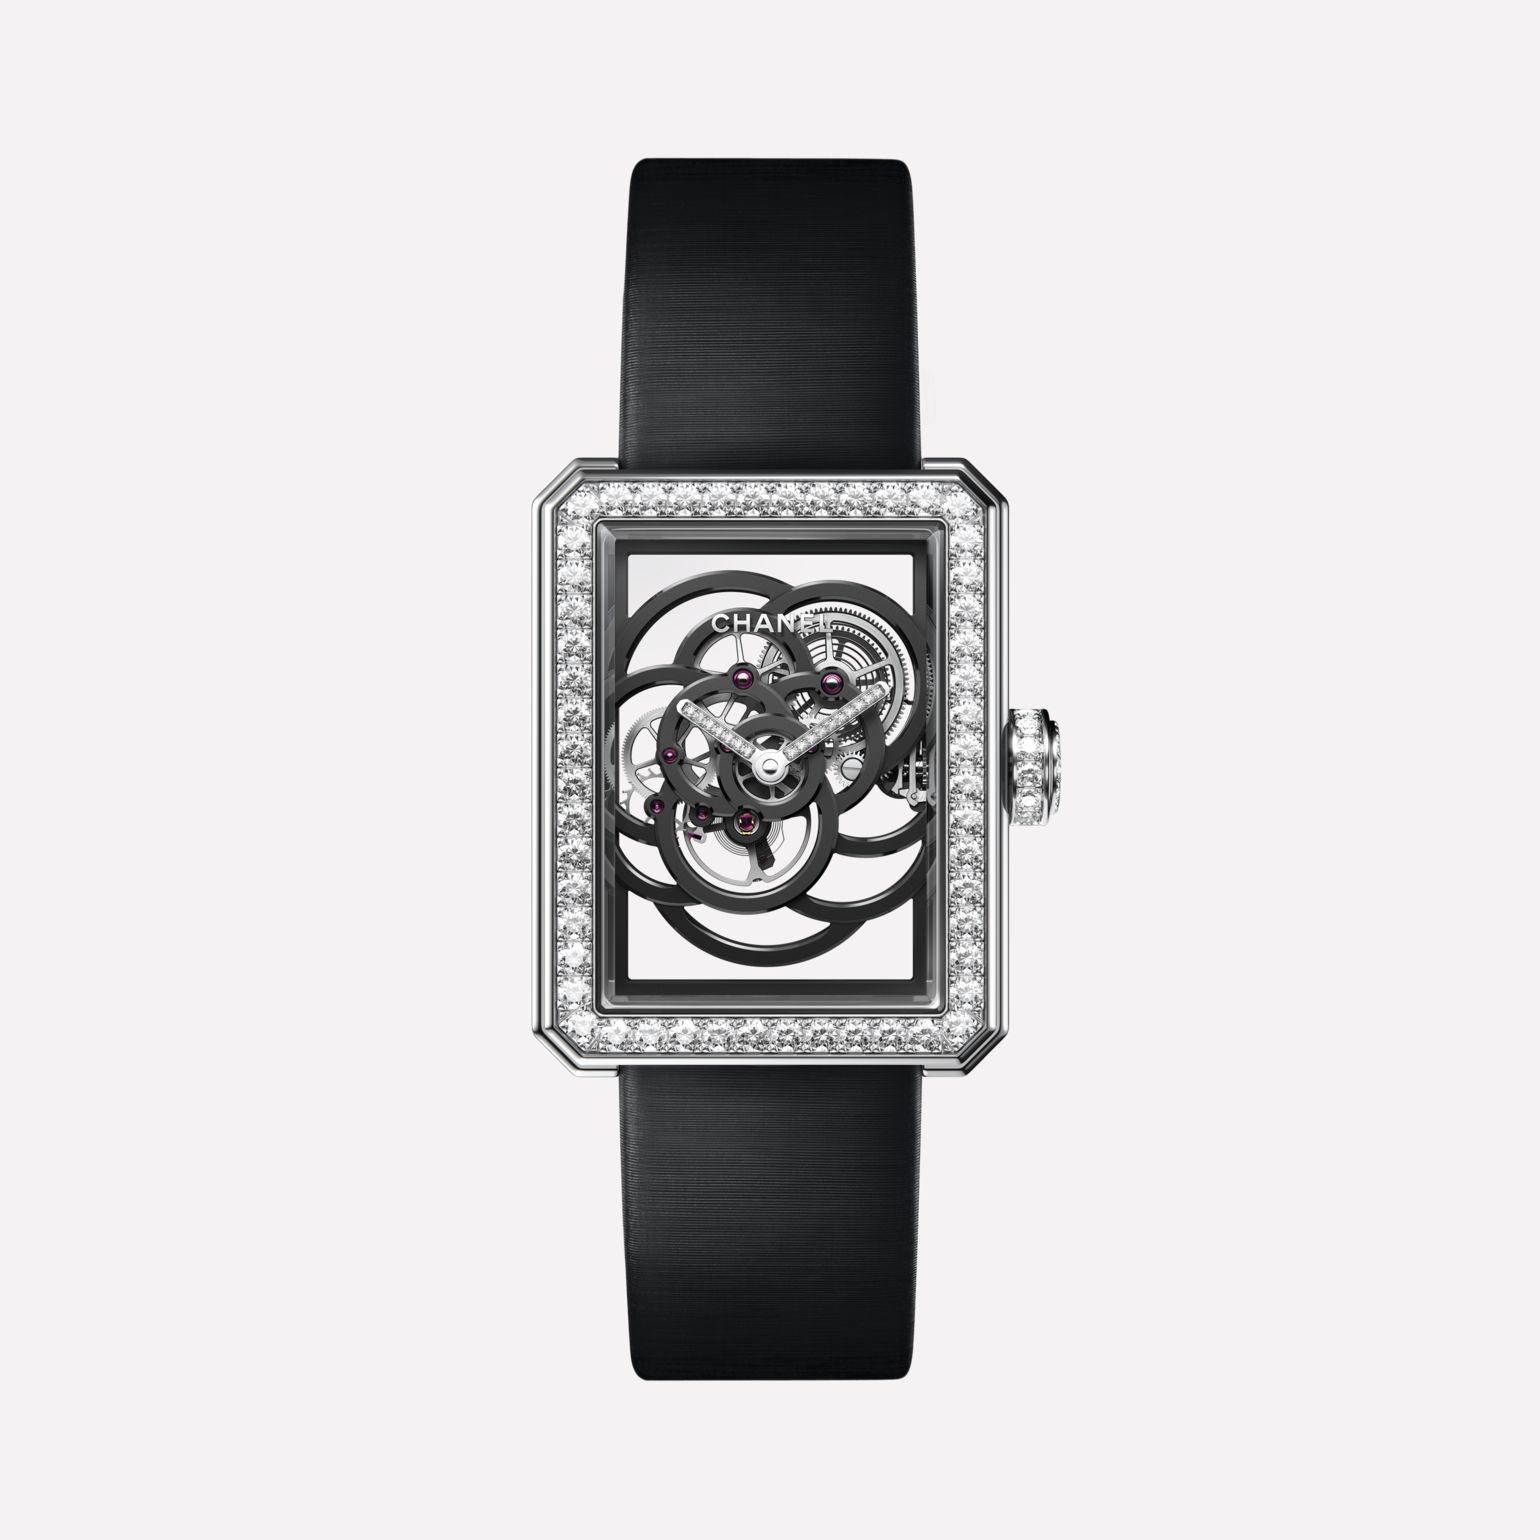 Première Camélia Skeleton White gold, case, bezel, hands and crown set with brilliant cut diamonds